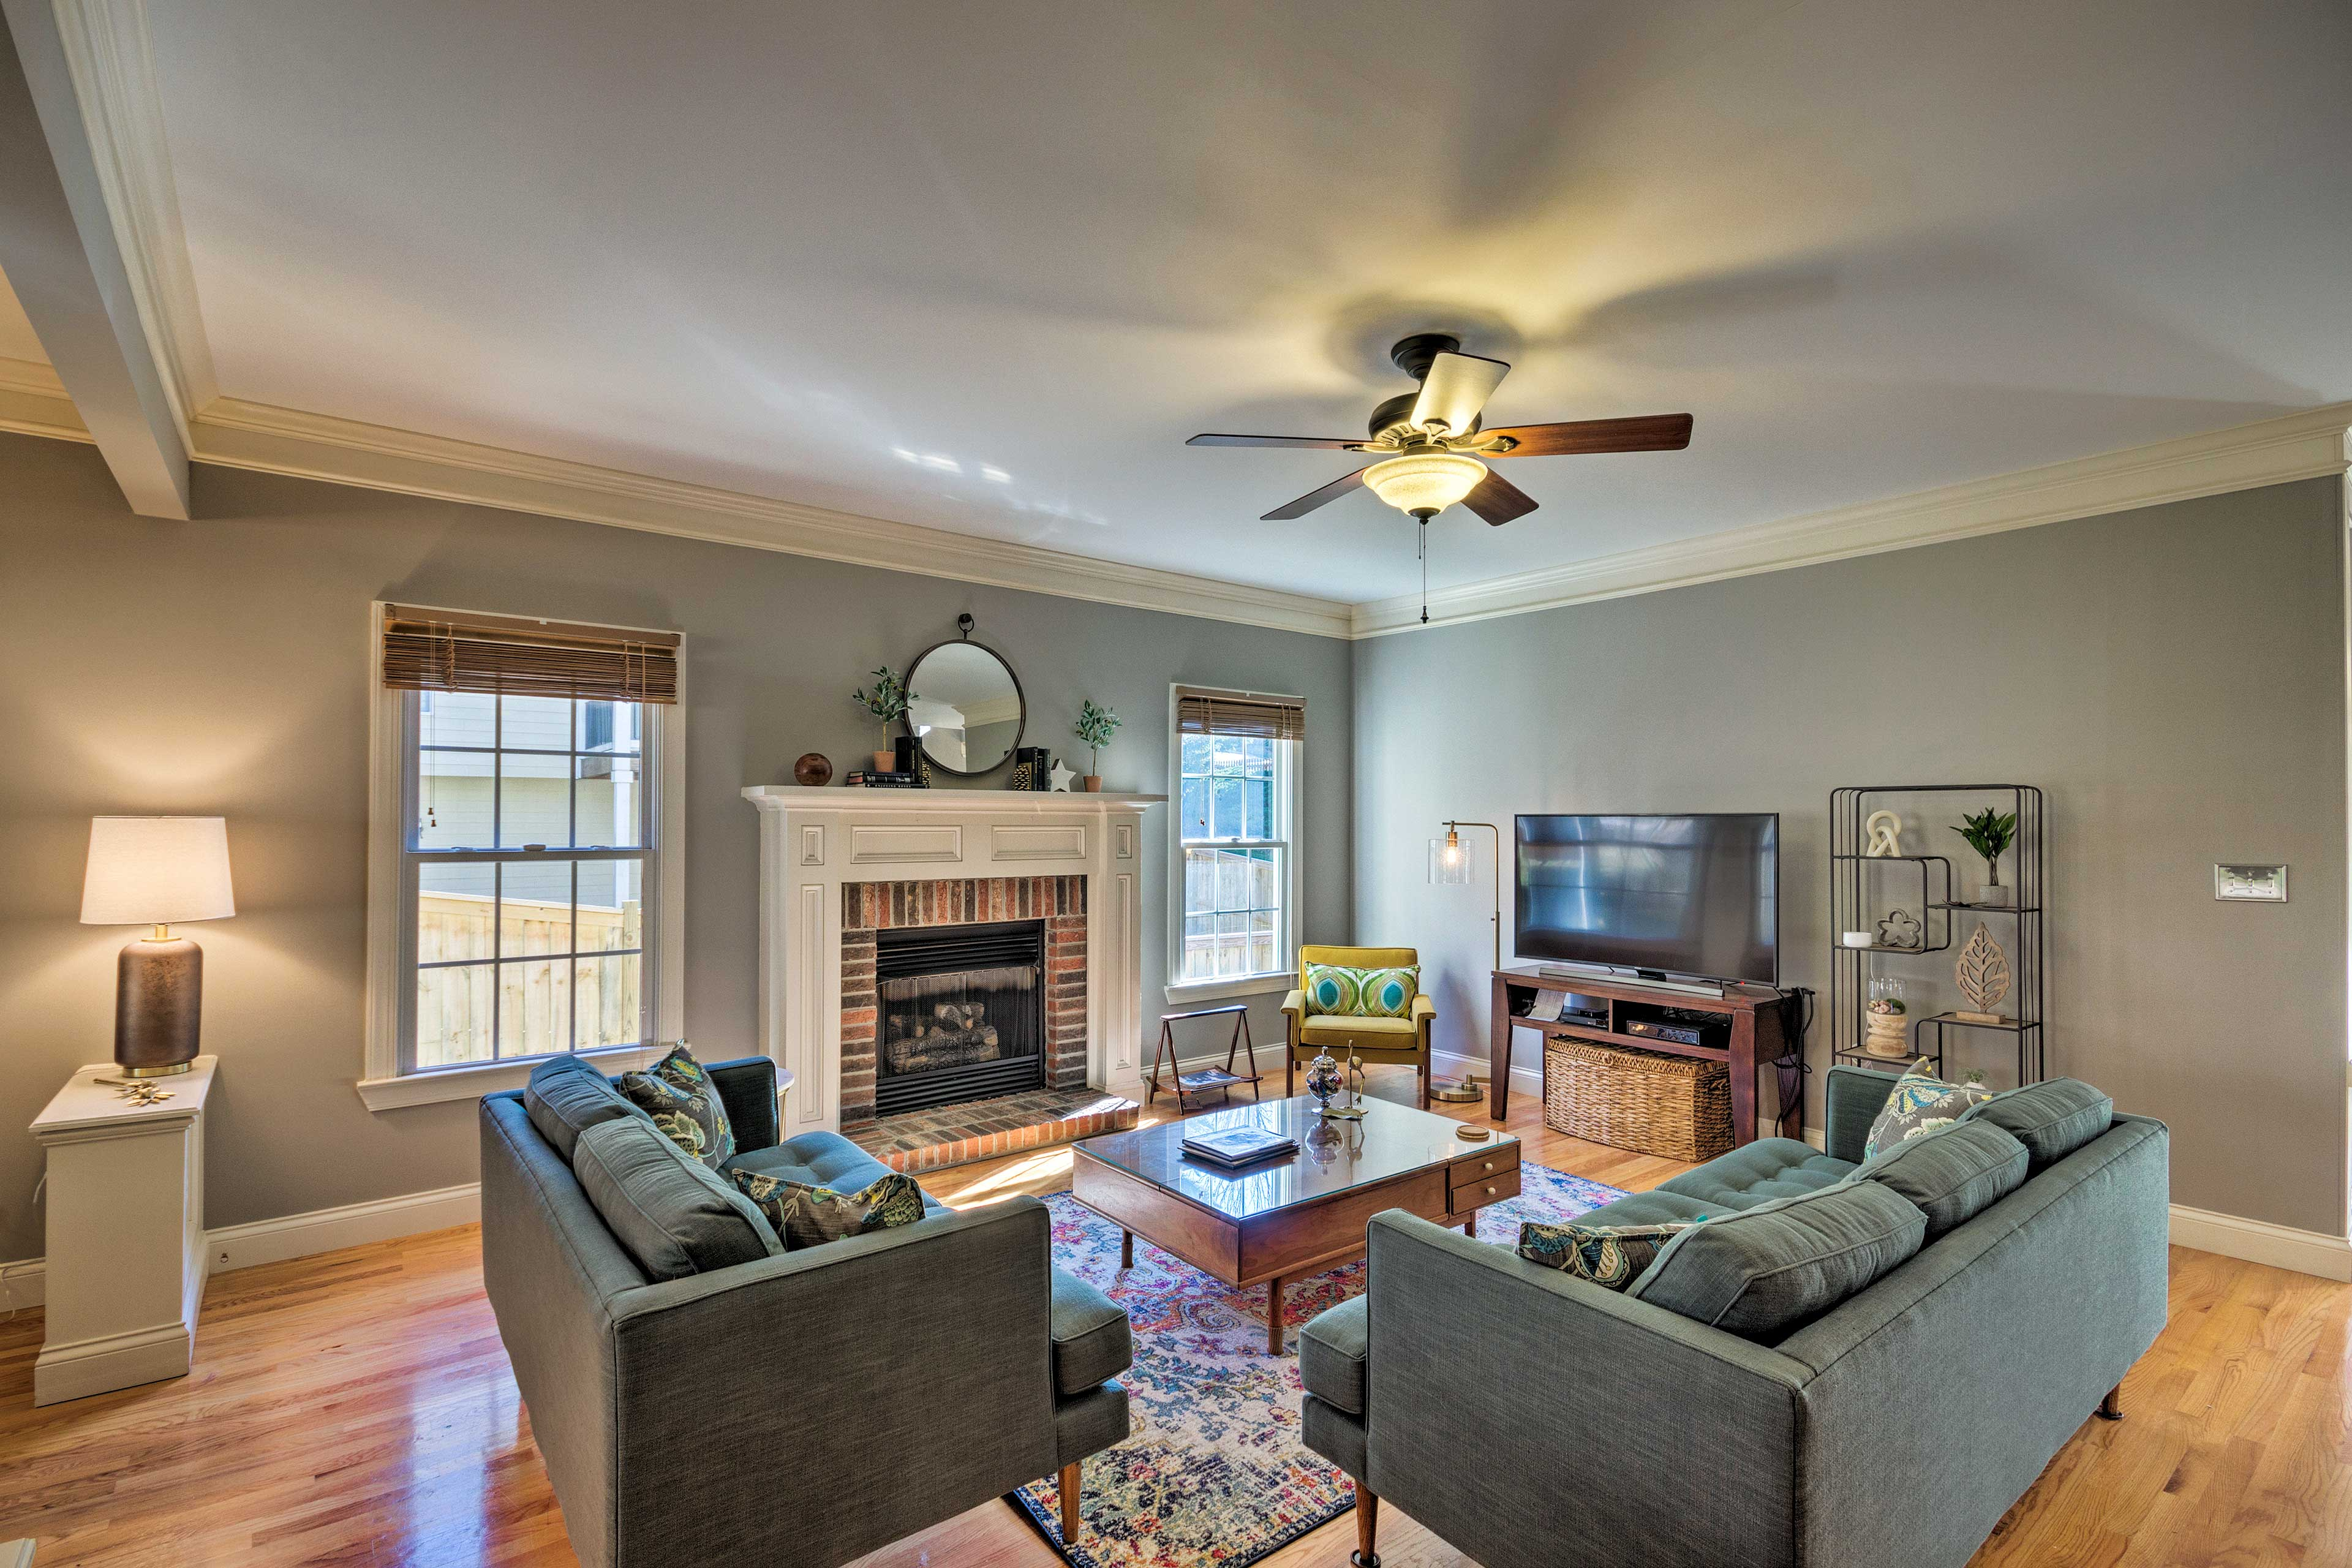 Find a house that will feel like a home-away-from-home in Arden!